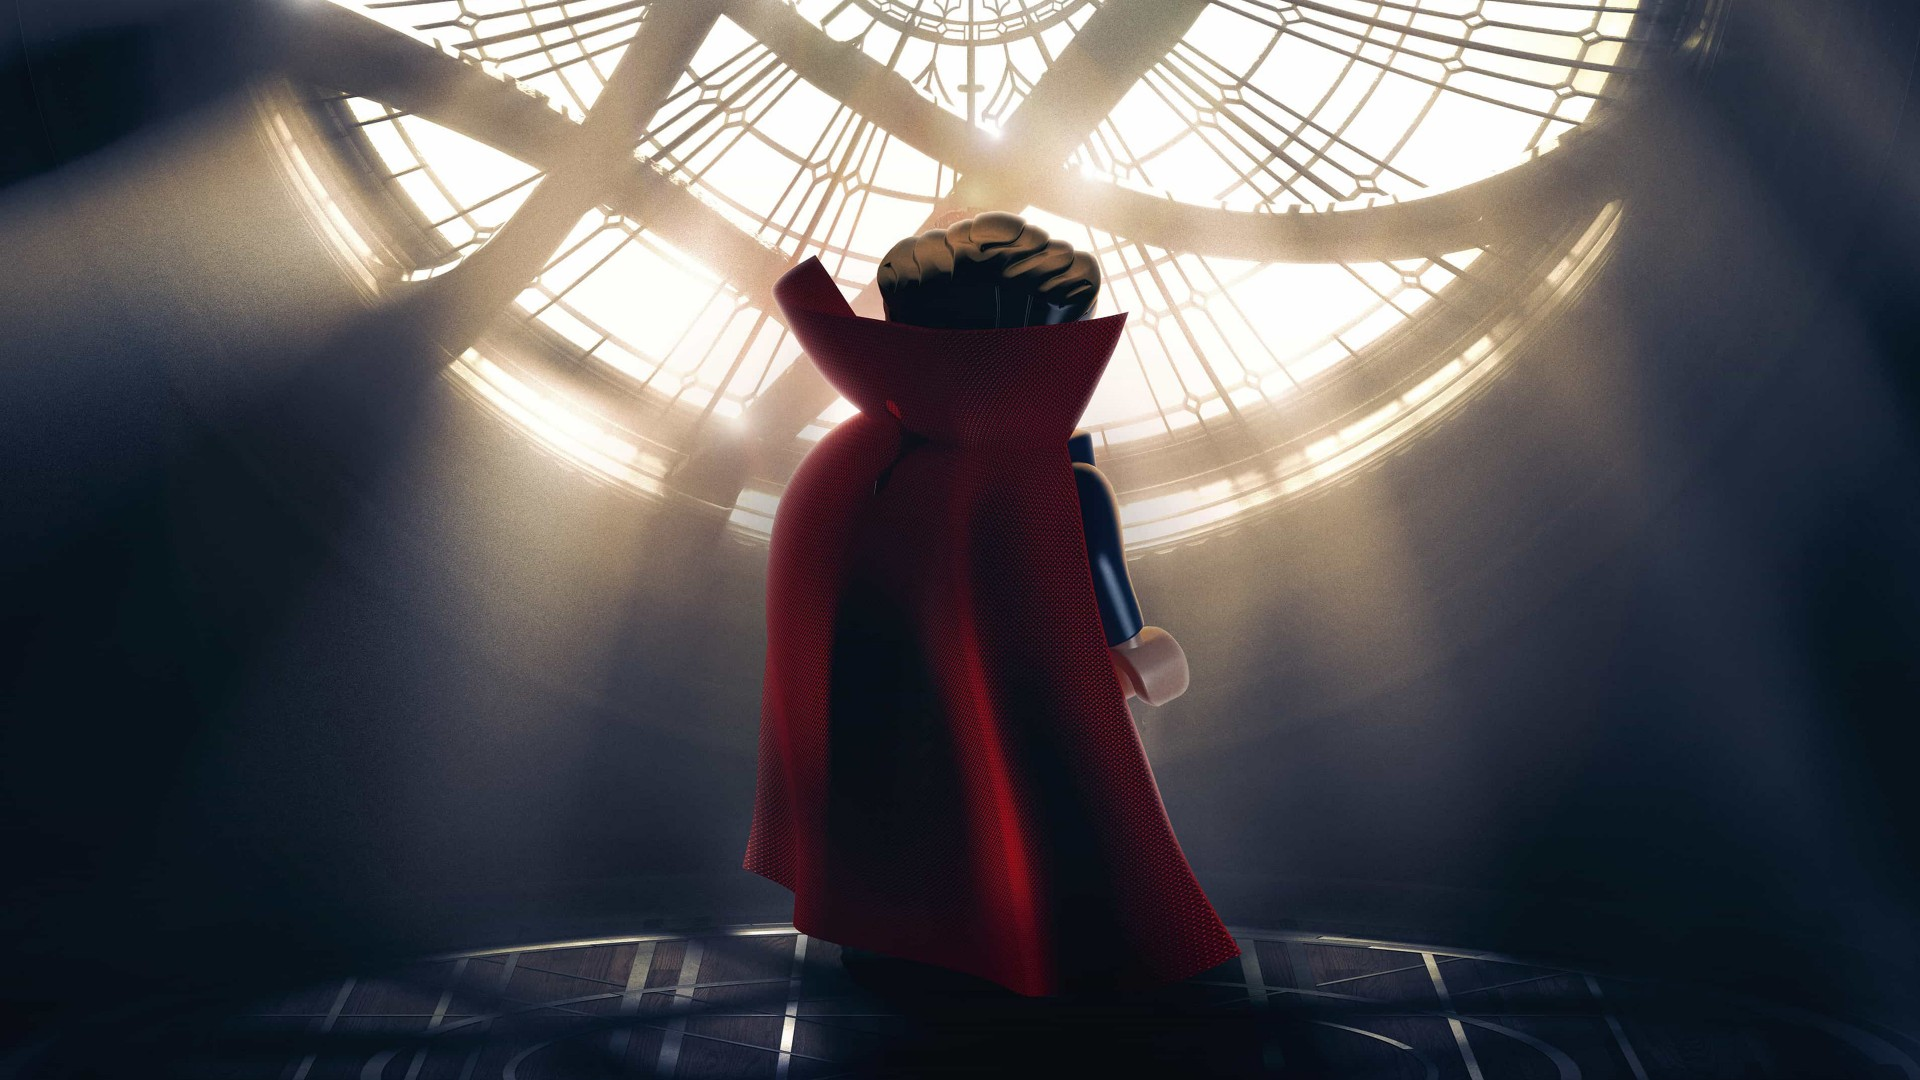 Latest Wallpapers Cars And Bikes Lego Doctor Strange 4k Wallpapers Hd Wallpapers Id 19755